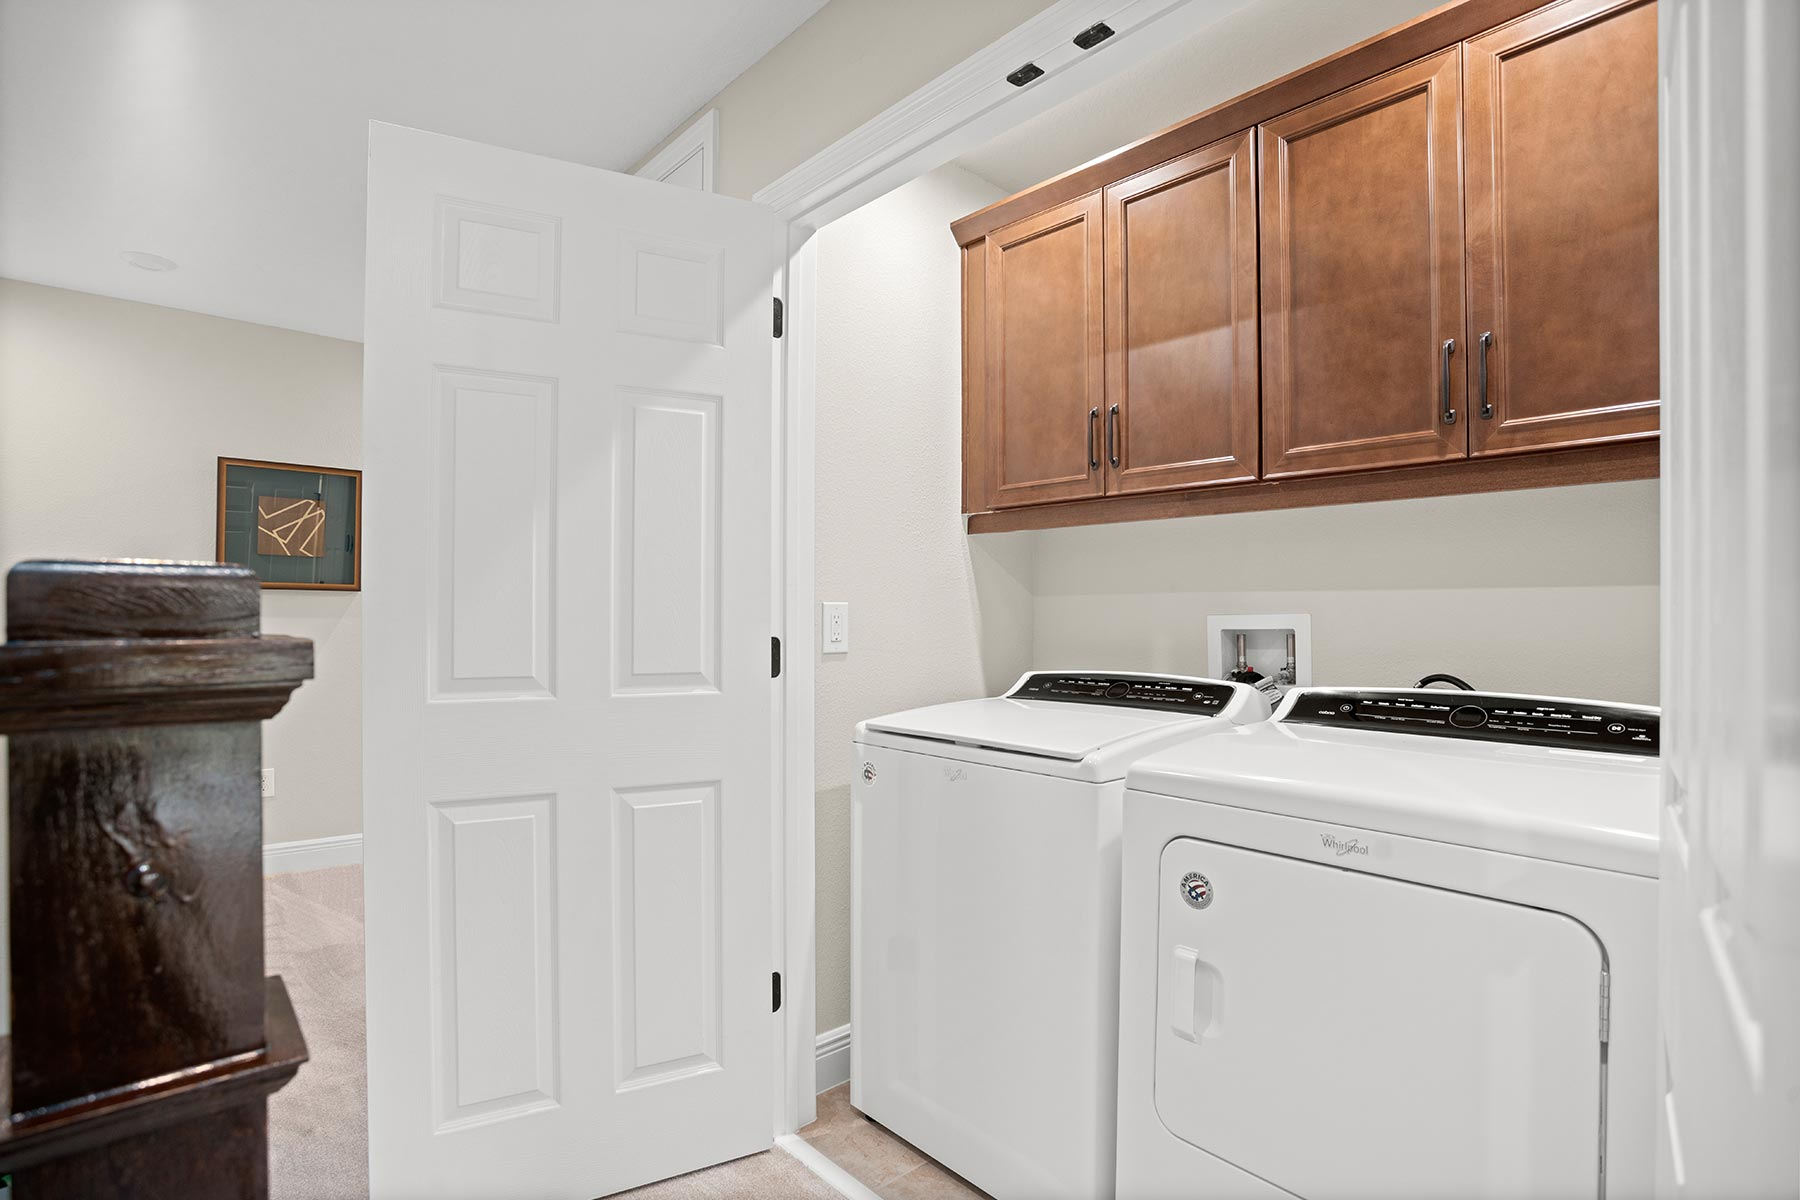 Dancy Plan Laundry at Legado in Windermere Florida by Mattamy Homes